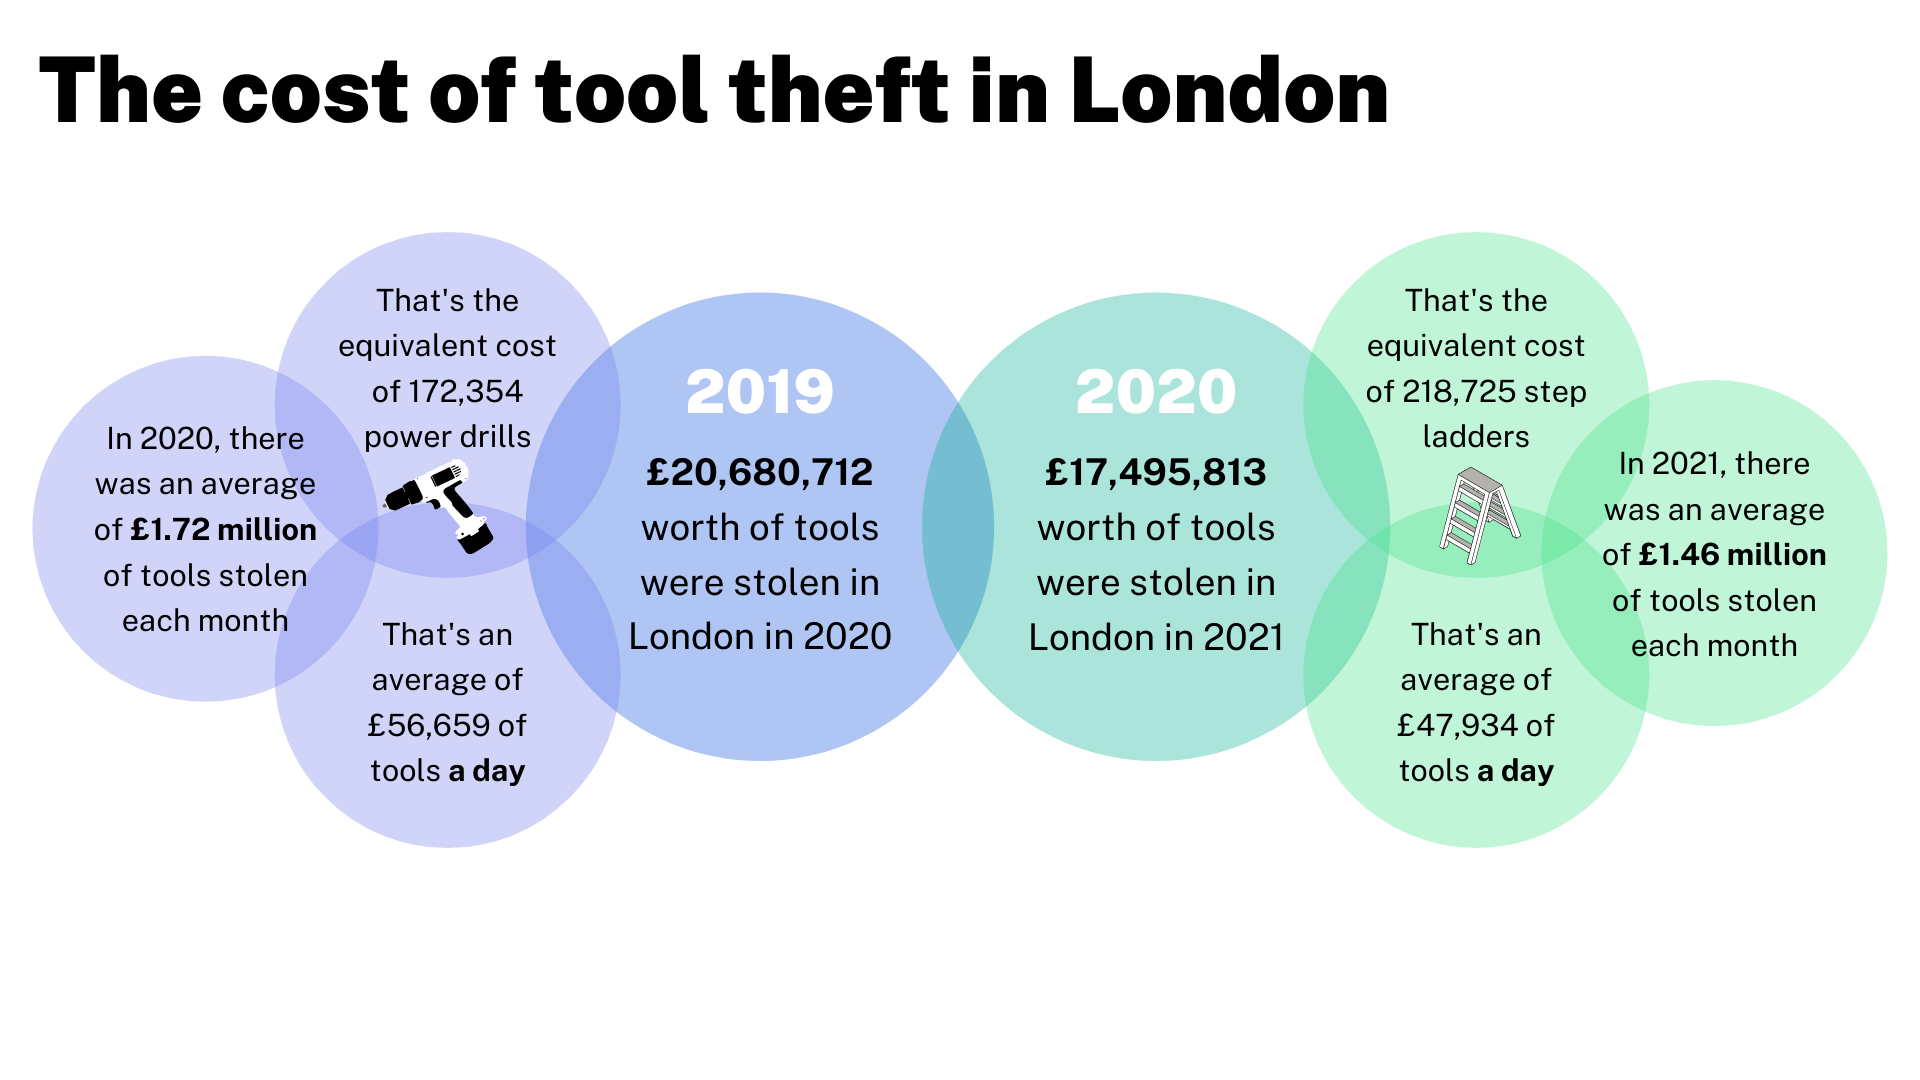 Cost of tool theft in london graphic